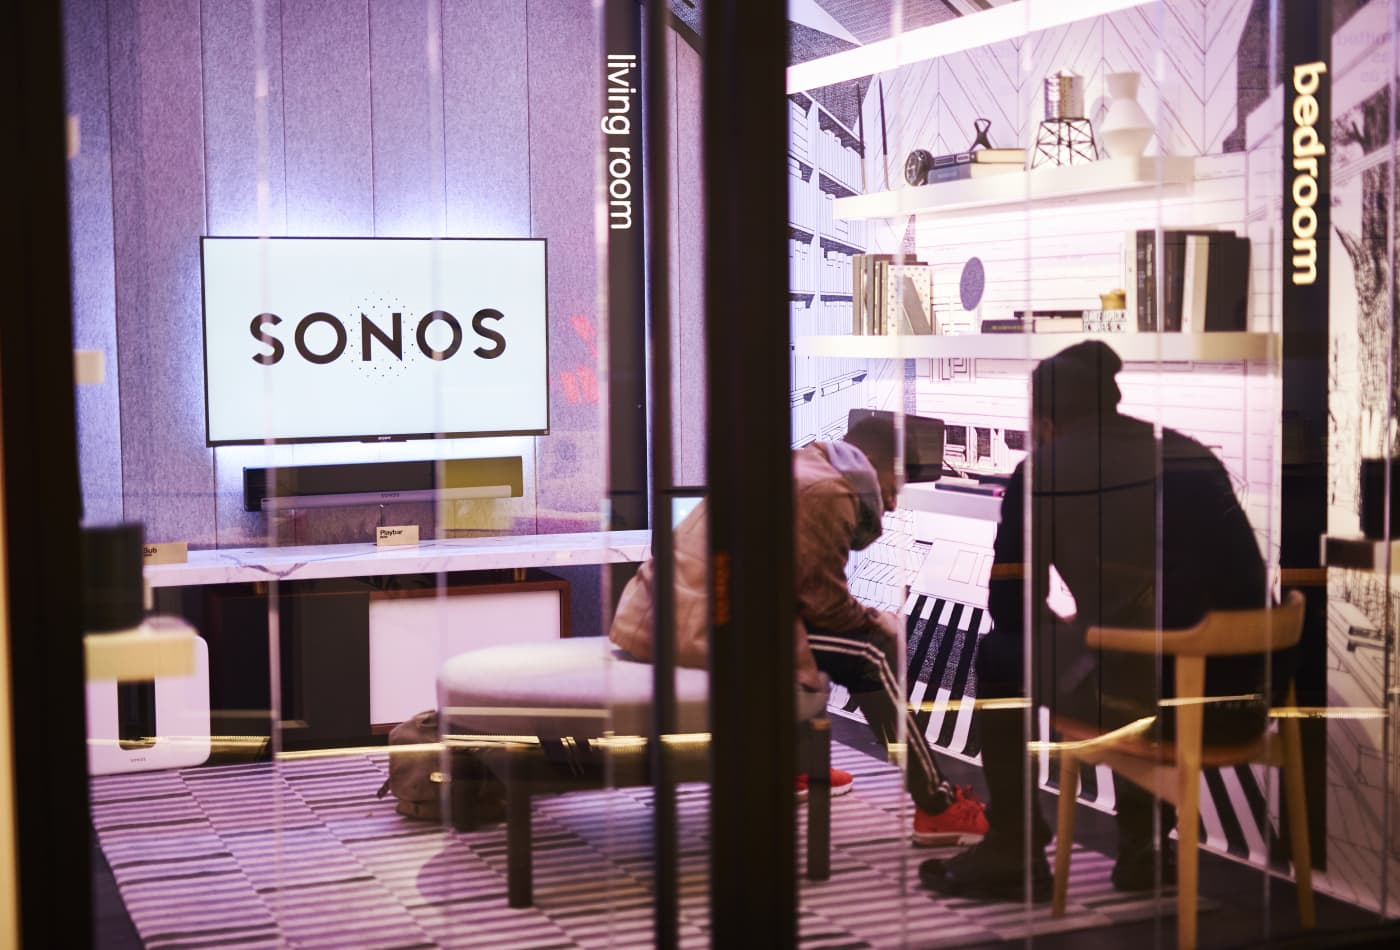 Sonos CEO expects to capitalize on the 'golden age of audio' to sell more home entertainment equipment